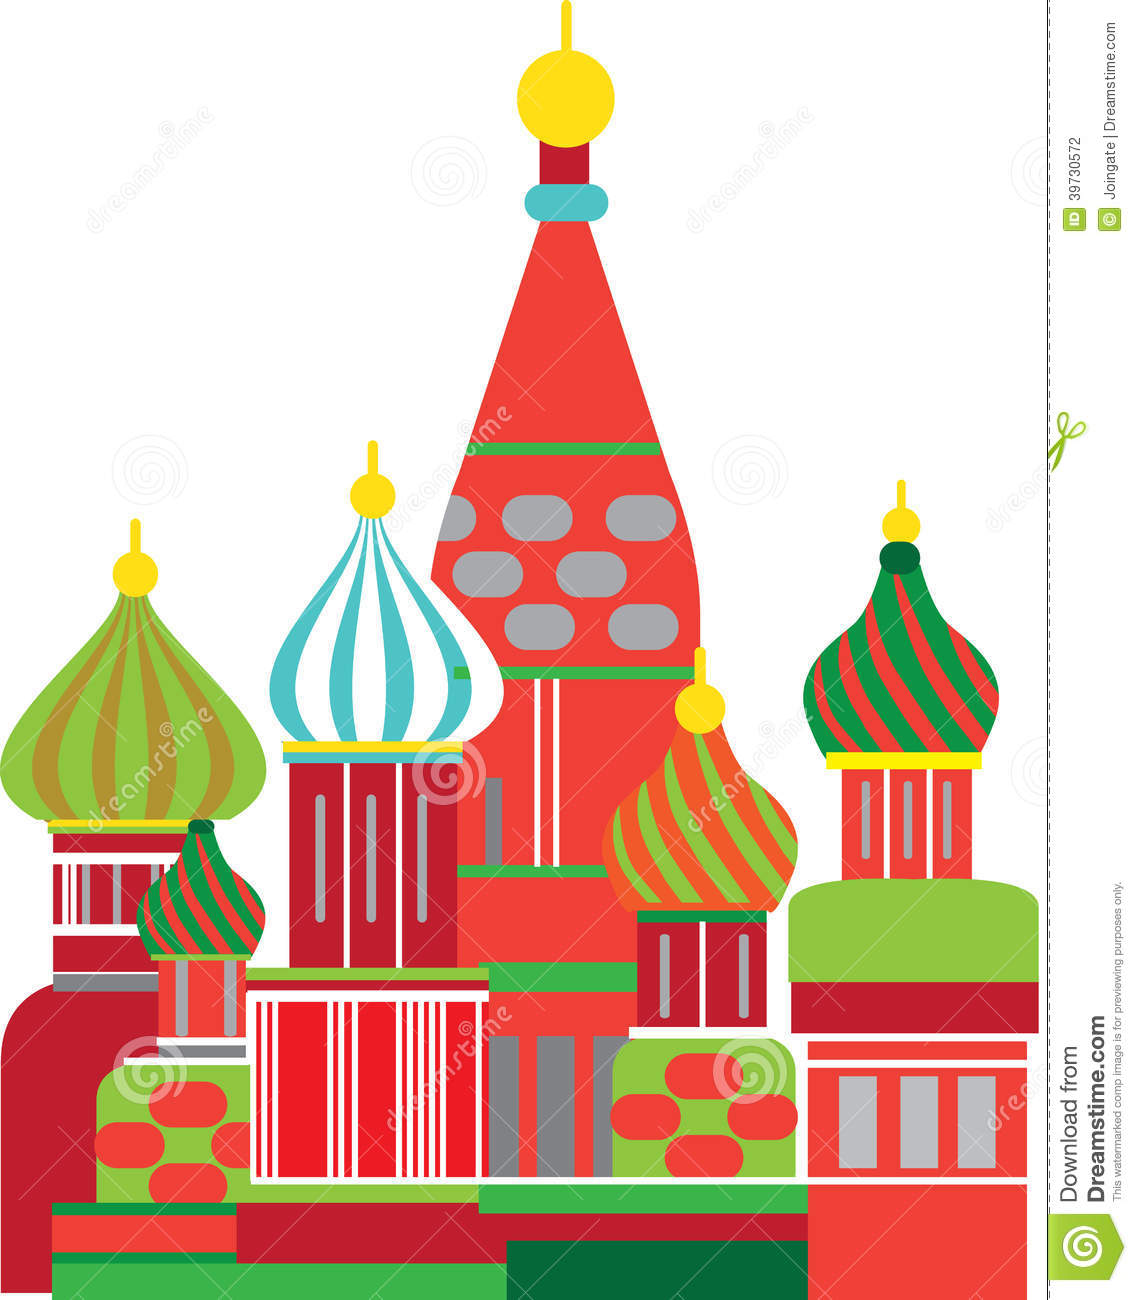 Red Onion Illustration Moscow Russian Onion D...